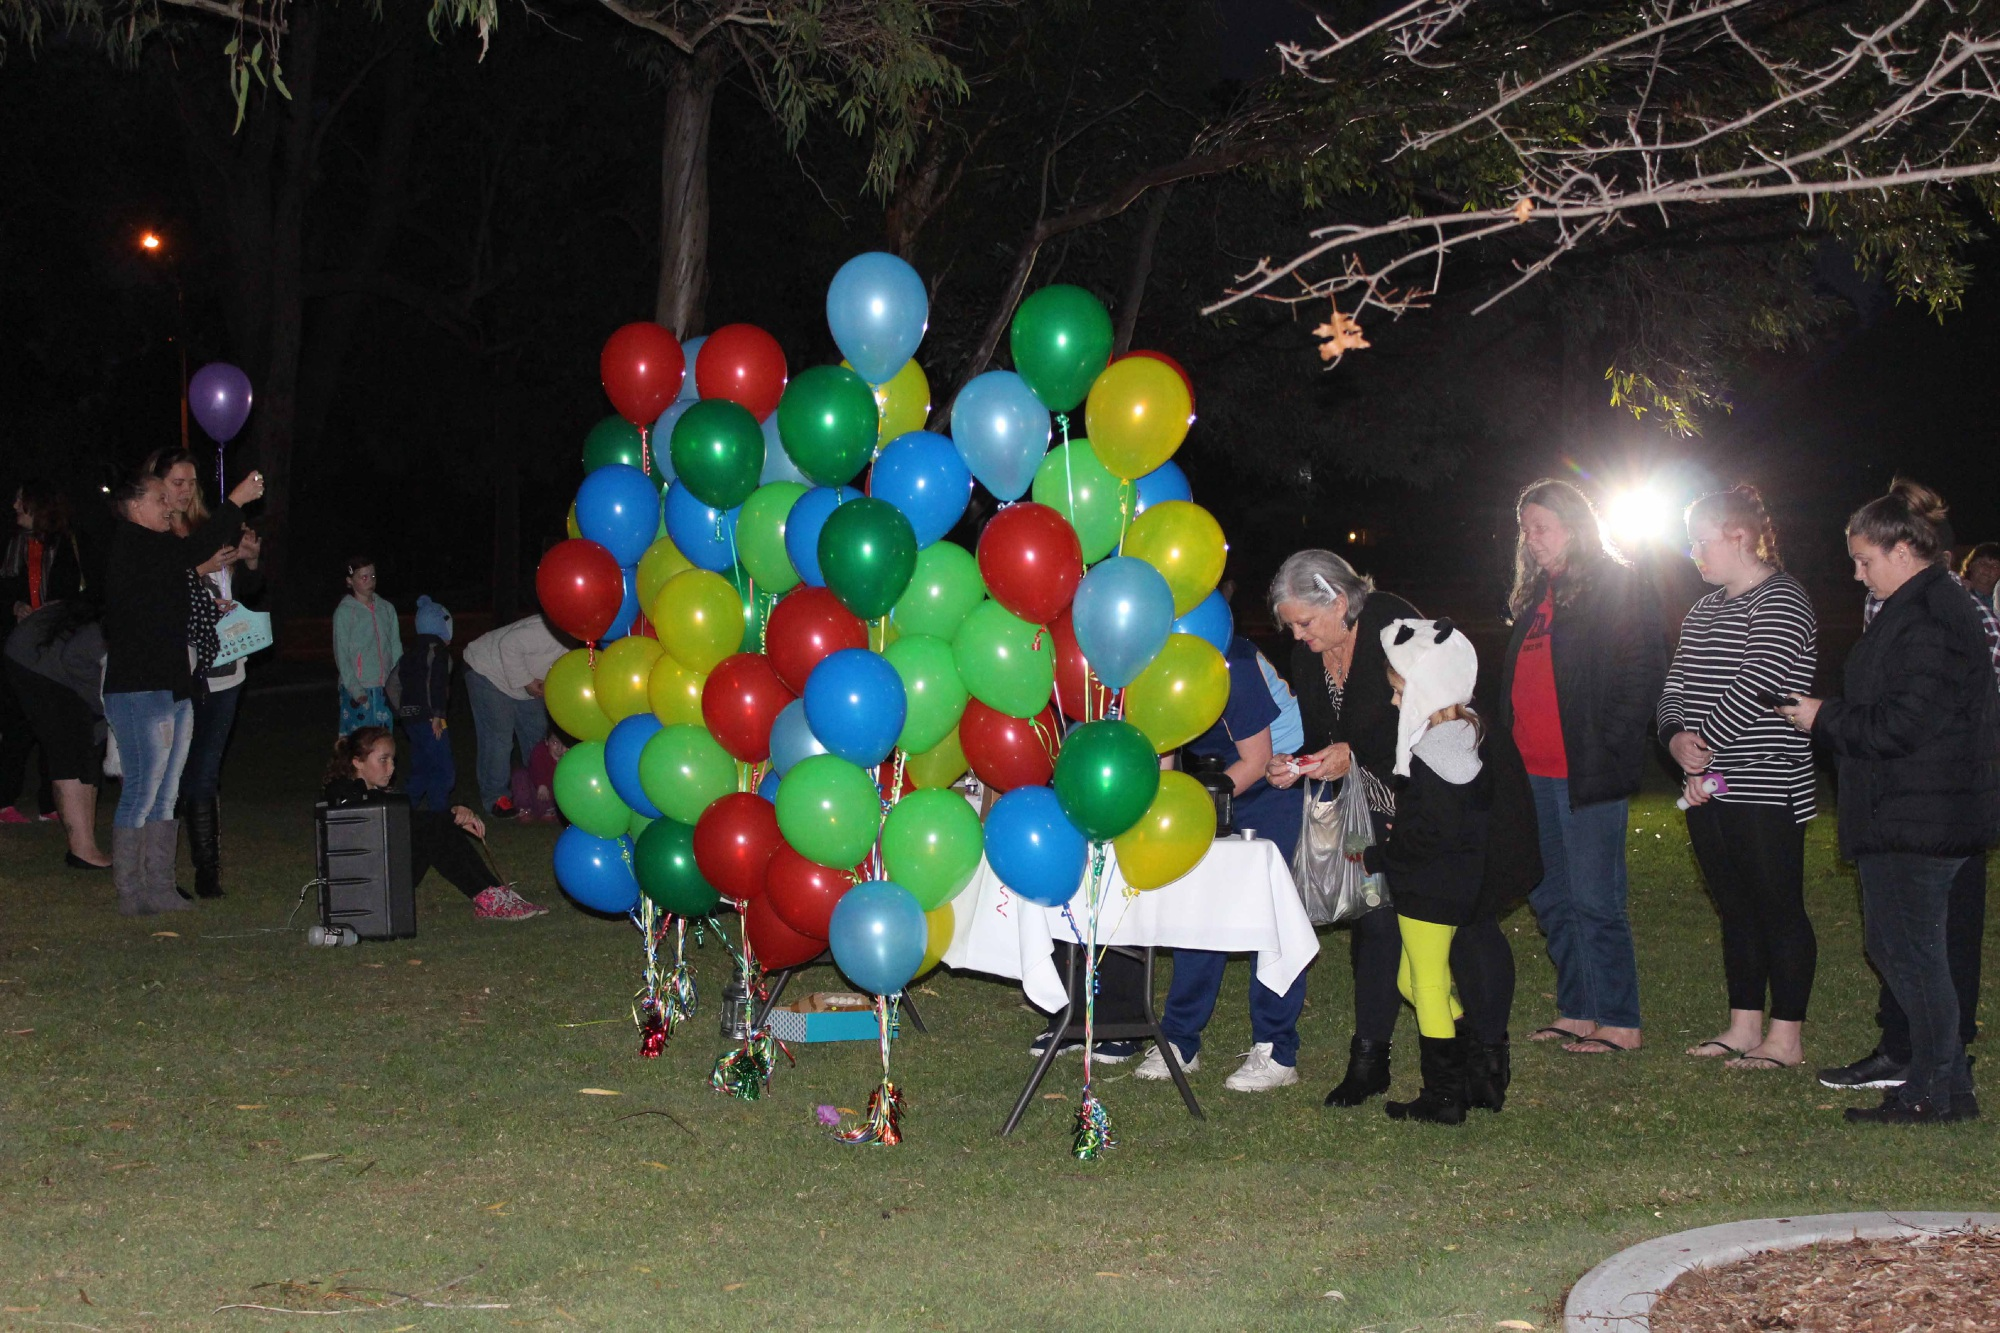 Aaron Pajich murder: hundreds gather at Kwinana candlelight vigil in memory of teen